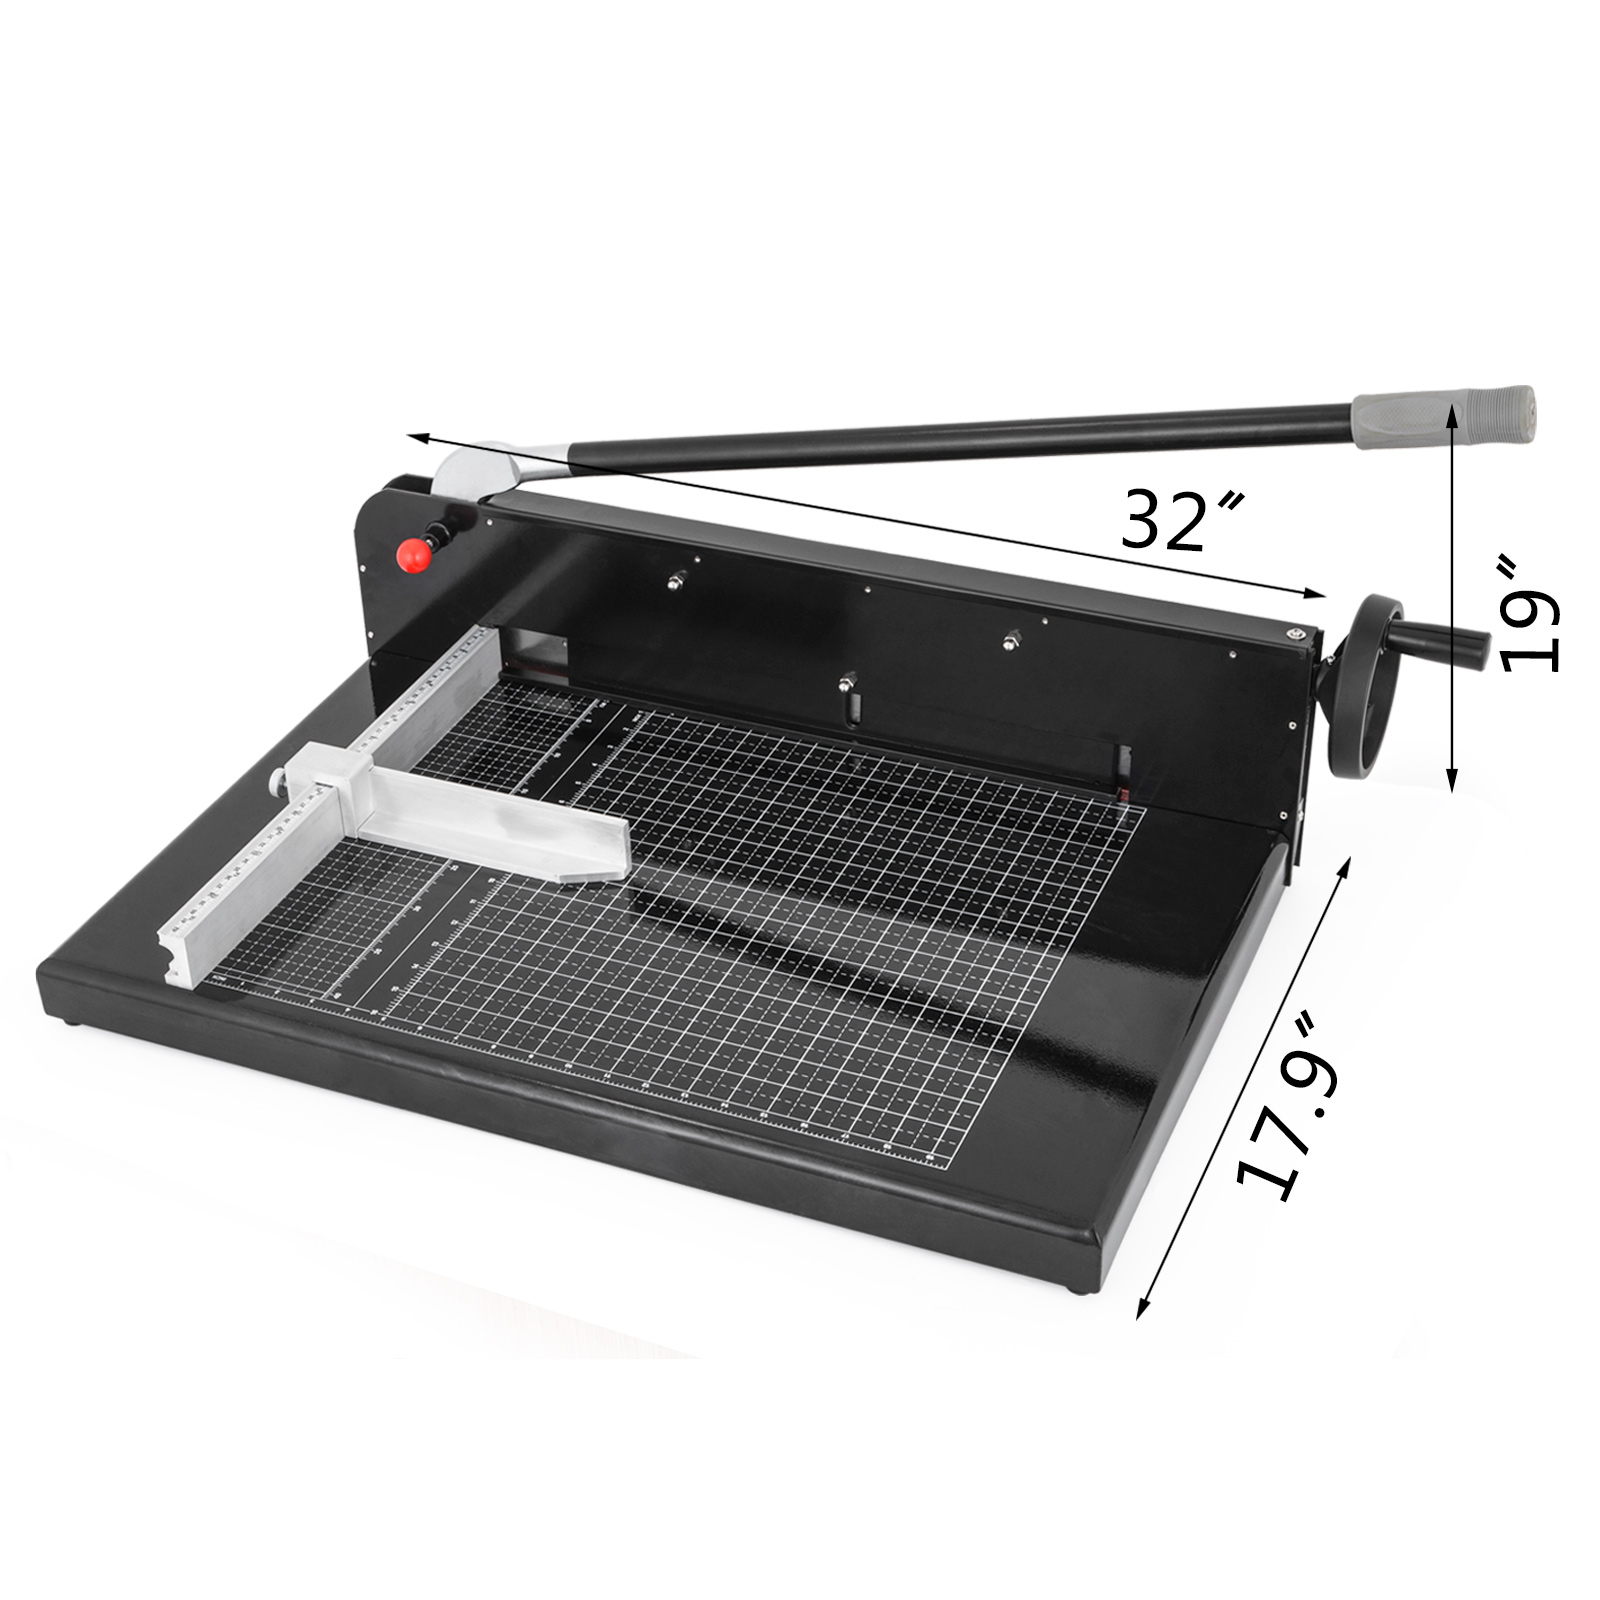 12-17-19-034-Width-Guillotine-Paper-Cutter-Stack-Paper-Guillotine-Trimmer thumbnail 46